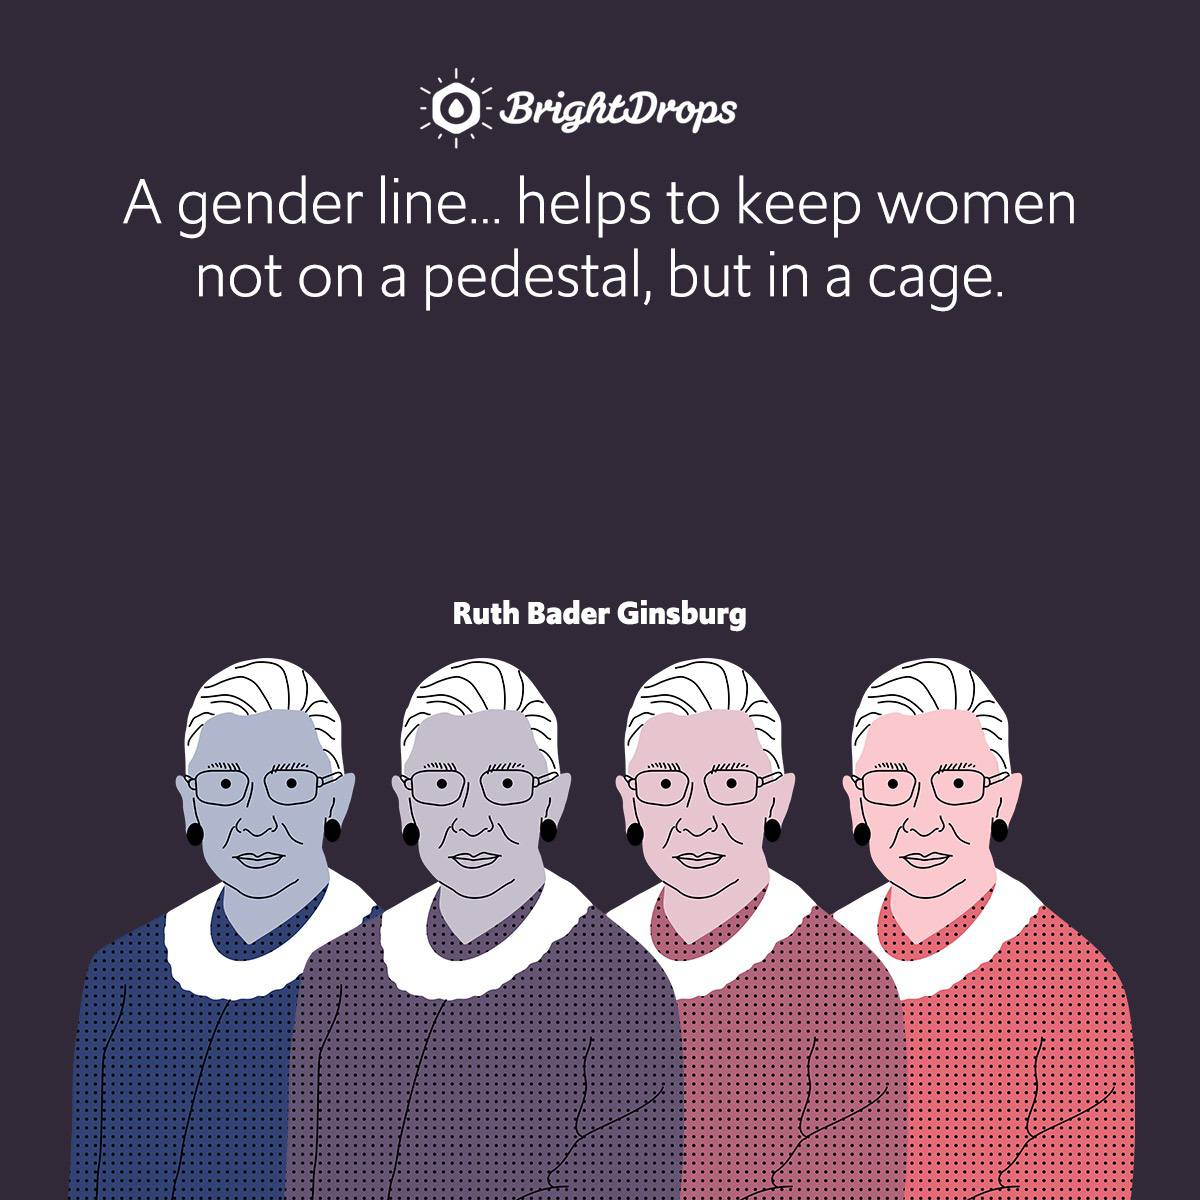 A gender line… helps to keep women not on a pedestal, but in a cage.